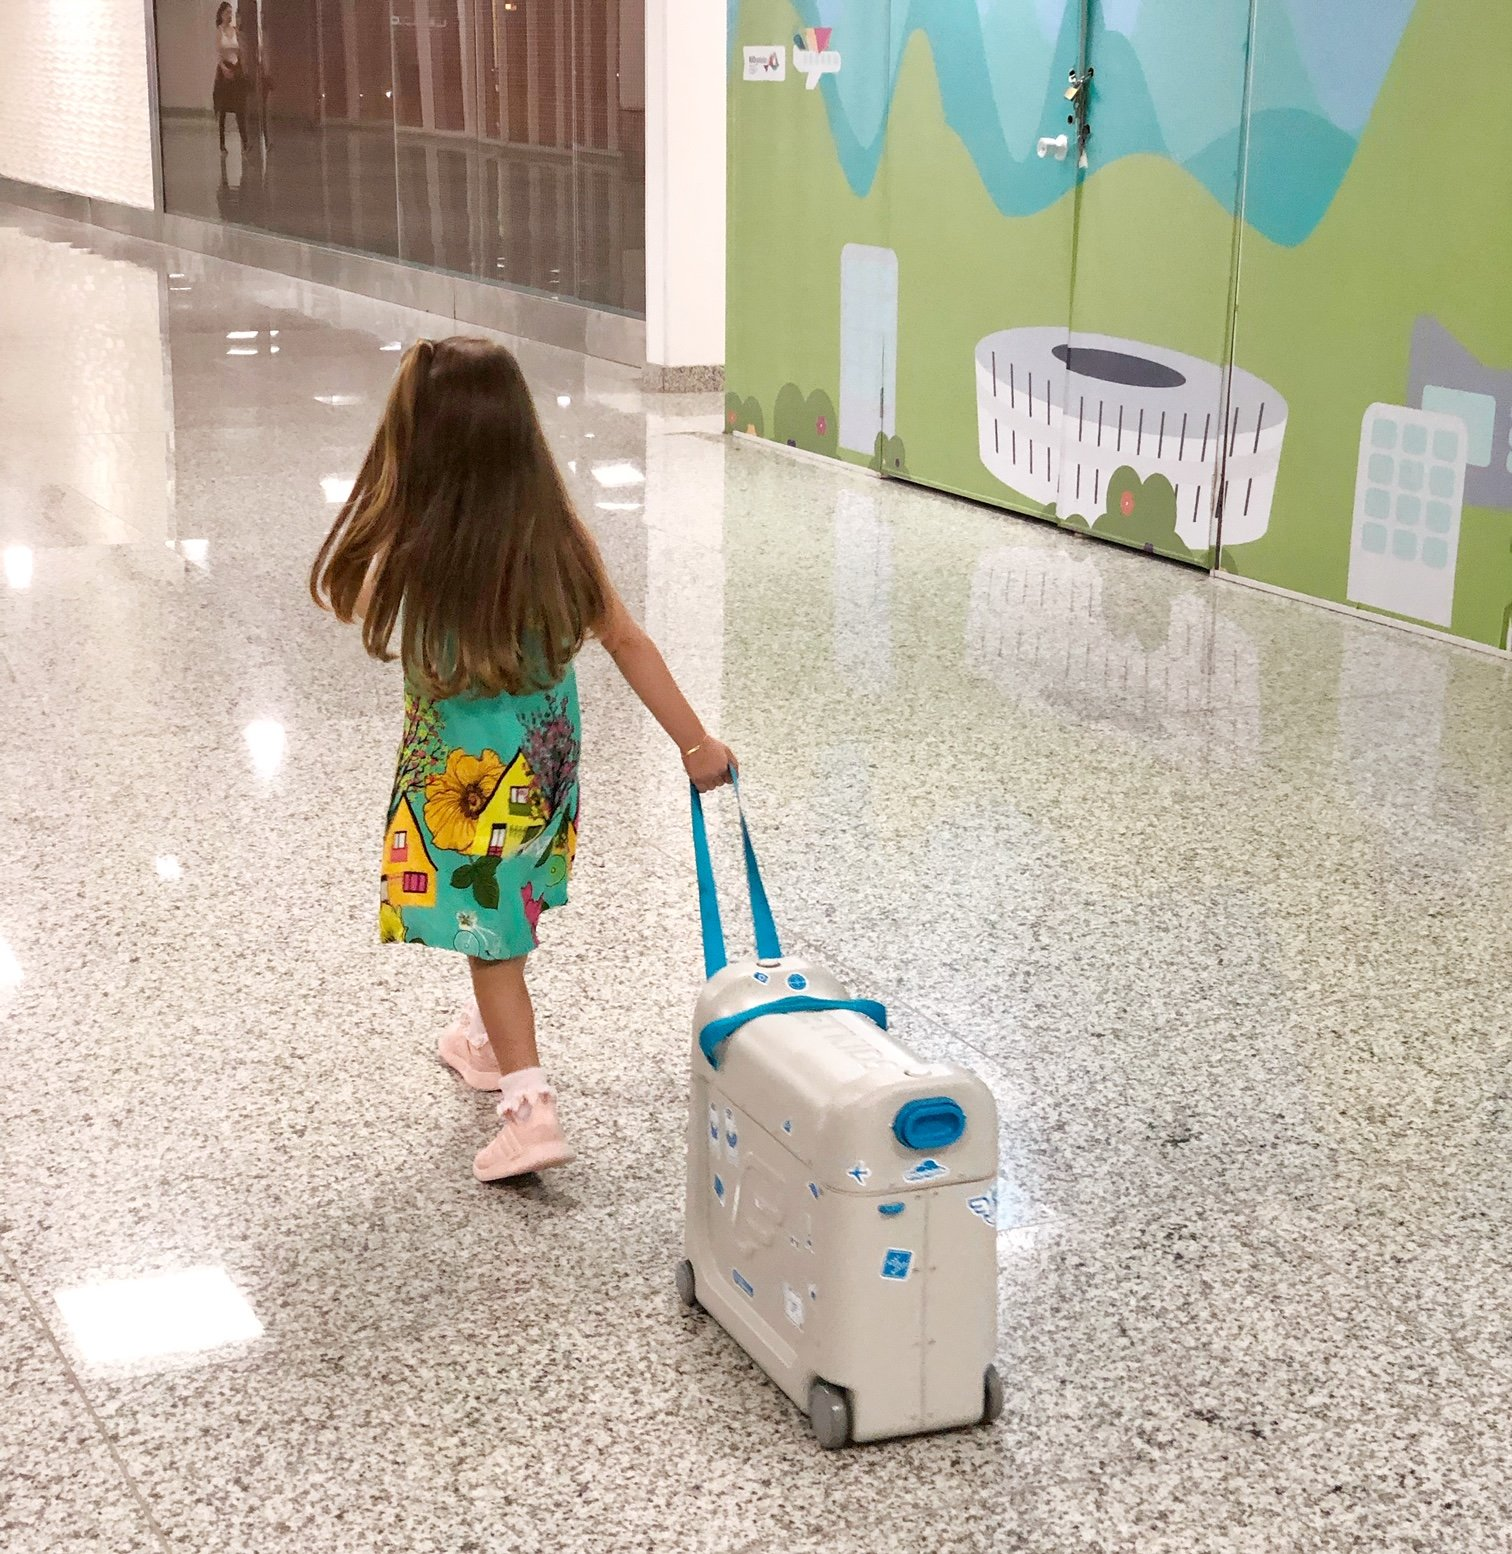 What Id And Documents Does My Child Need To Fly 2021